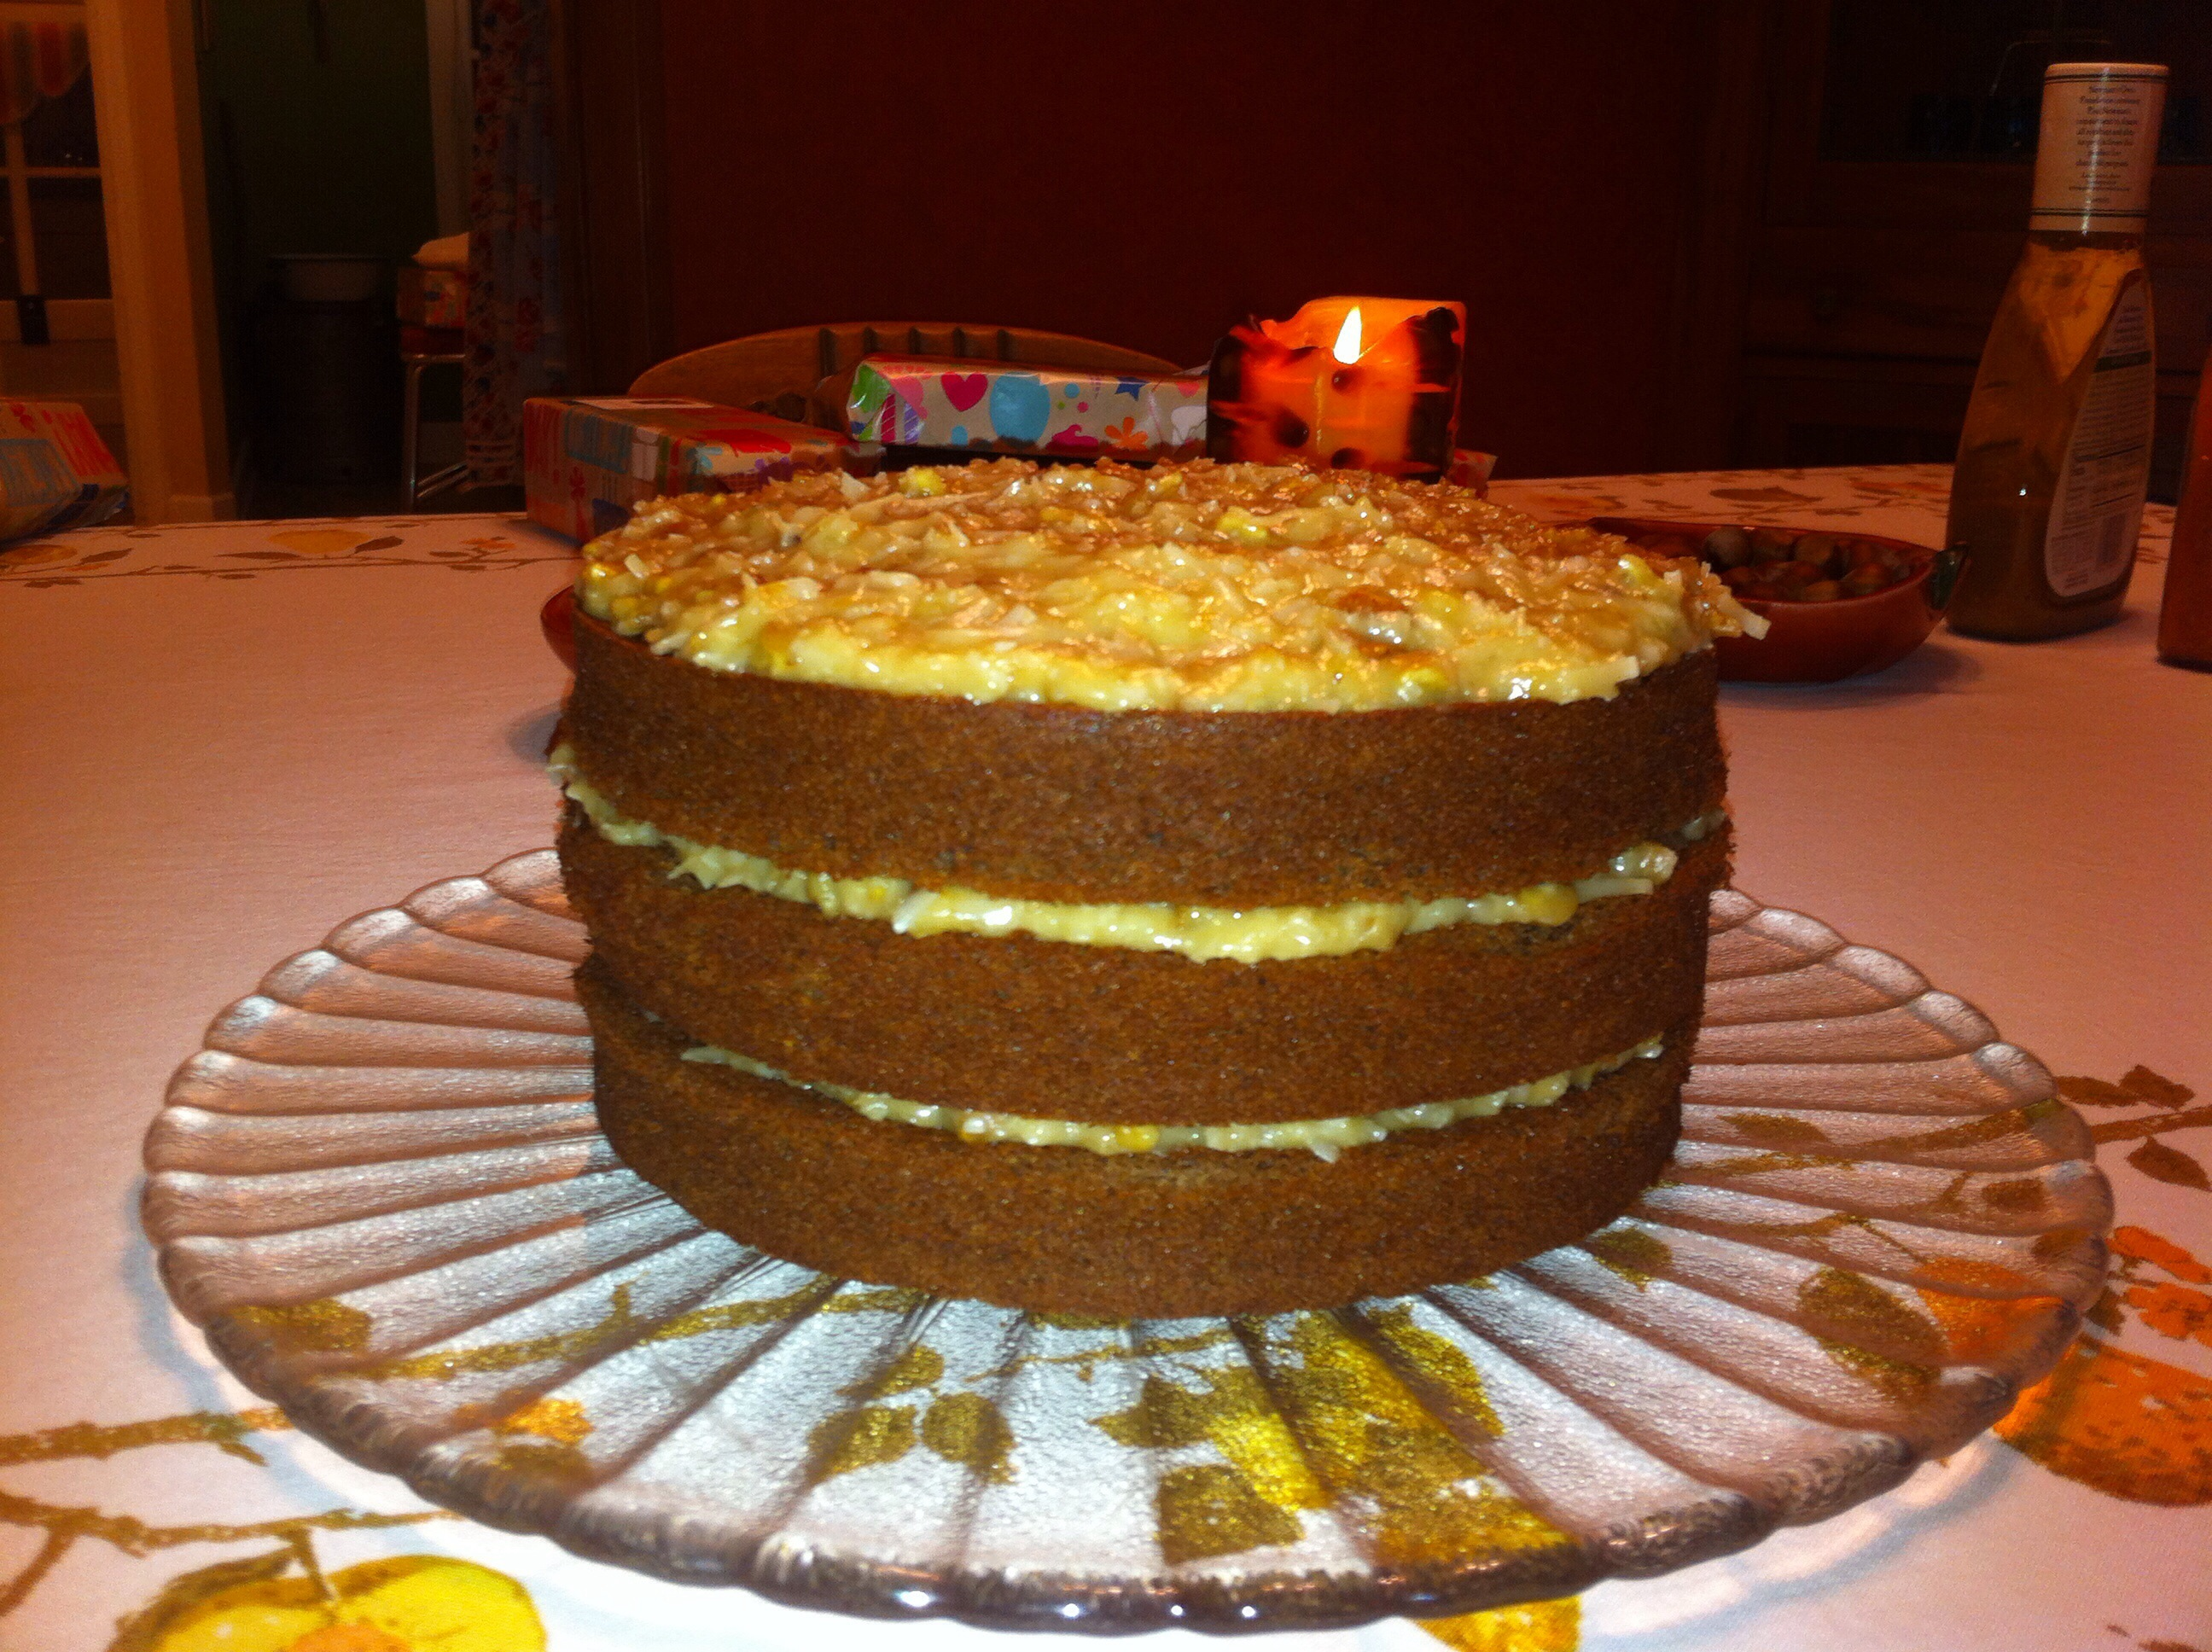 A not so great iPhone shot of the cake on a platter with coconut-pecan frosting showing between layers